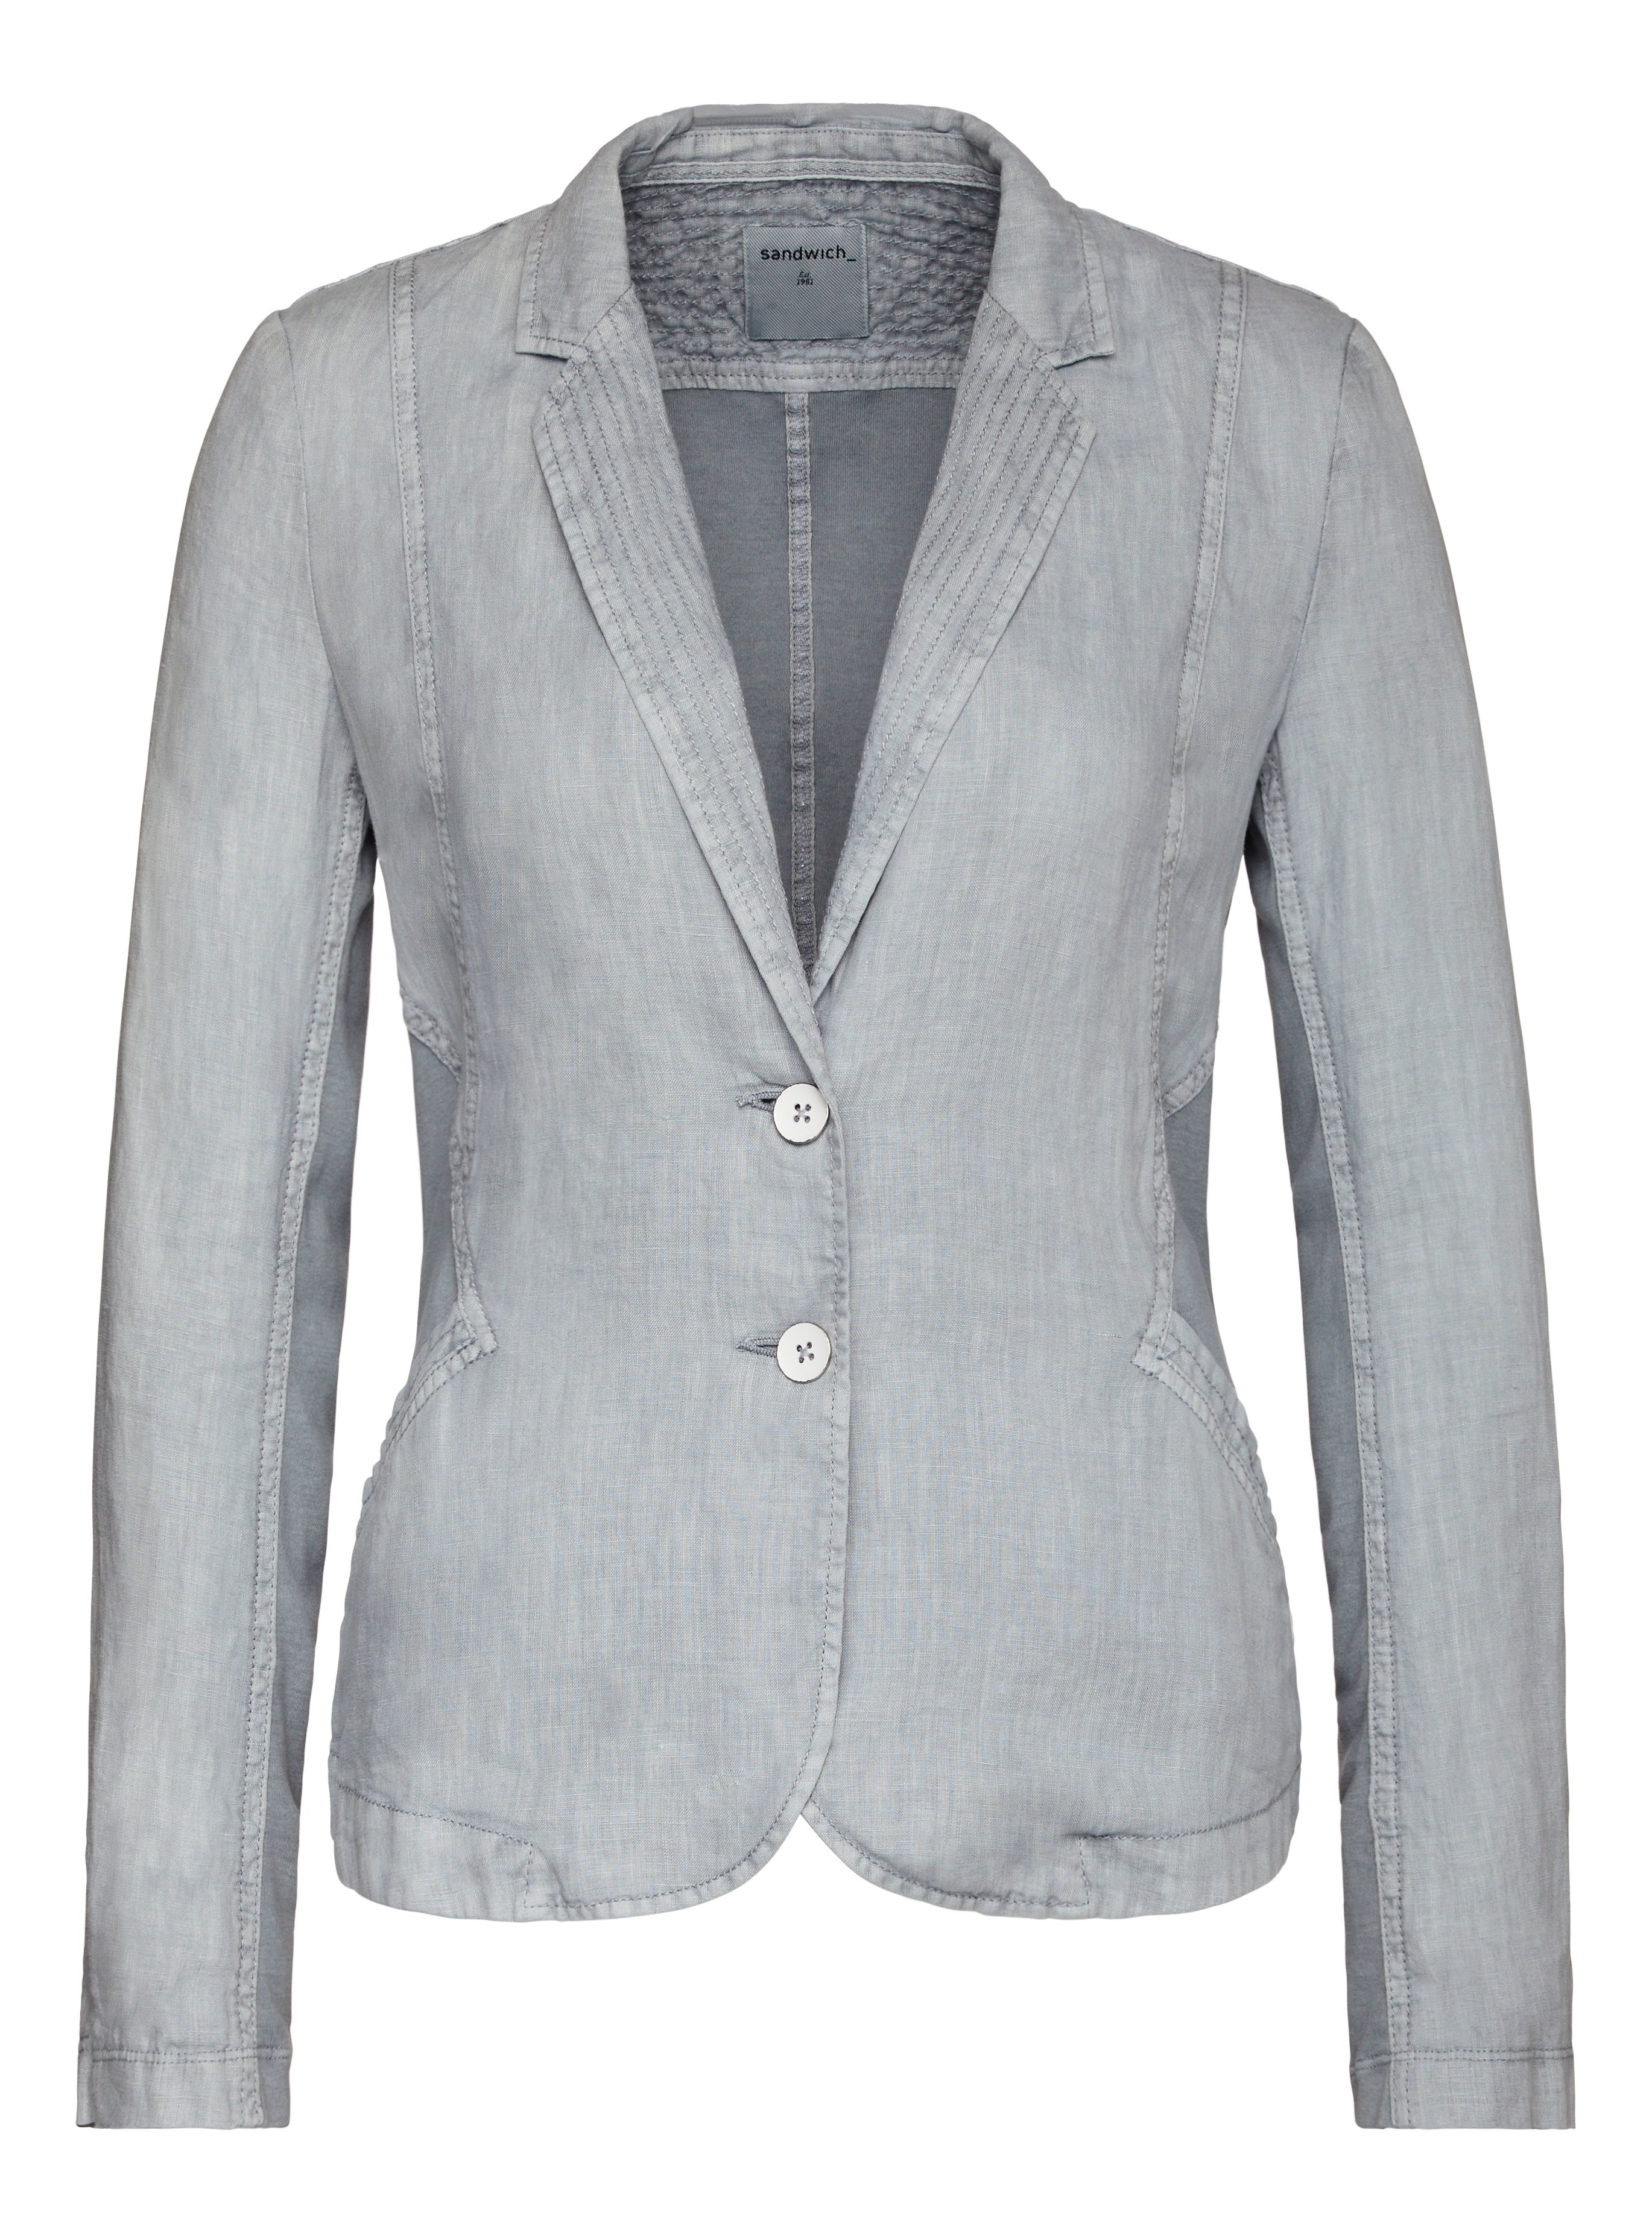 Bluish-grey linen jacket, features front detail that is made of rarely woven fabric from brown and light blue yarns. This detail matches the wide belt. Stylish and practical summer garment: stay warm with tied belt or beltless for a sizzling summer day.